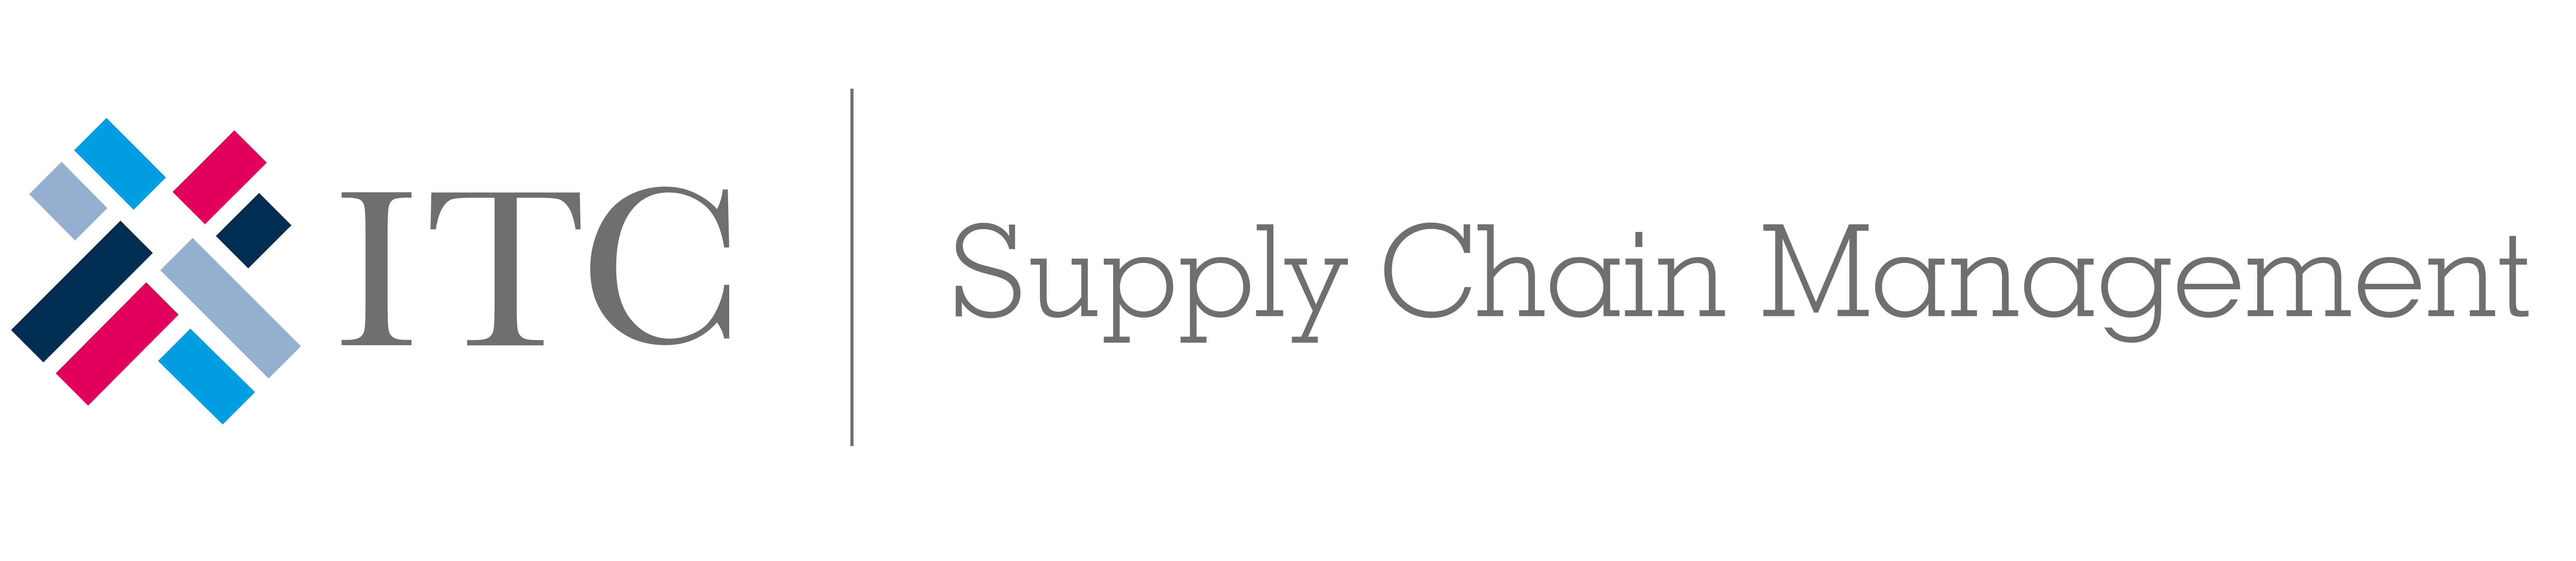 ITC | Supply Chain Management